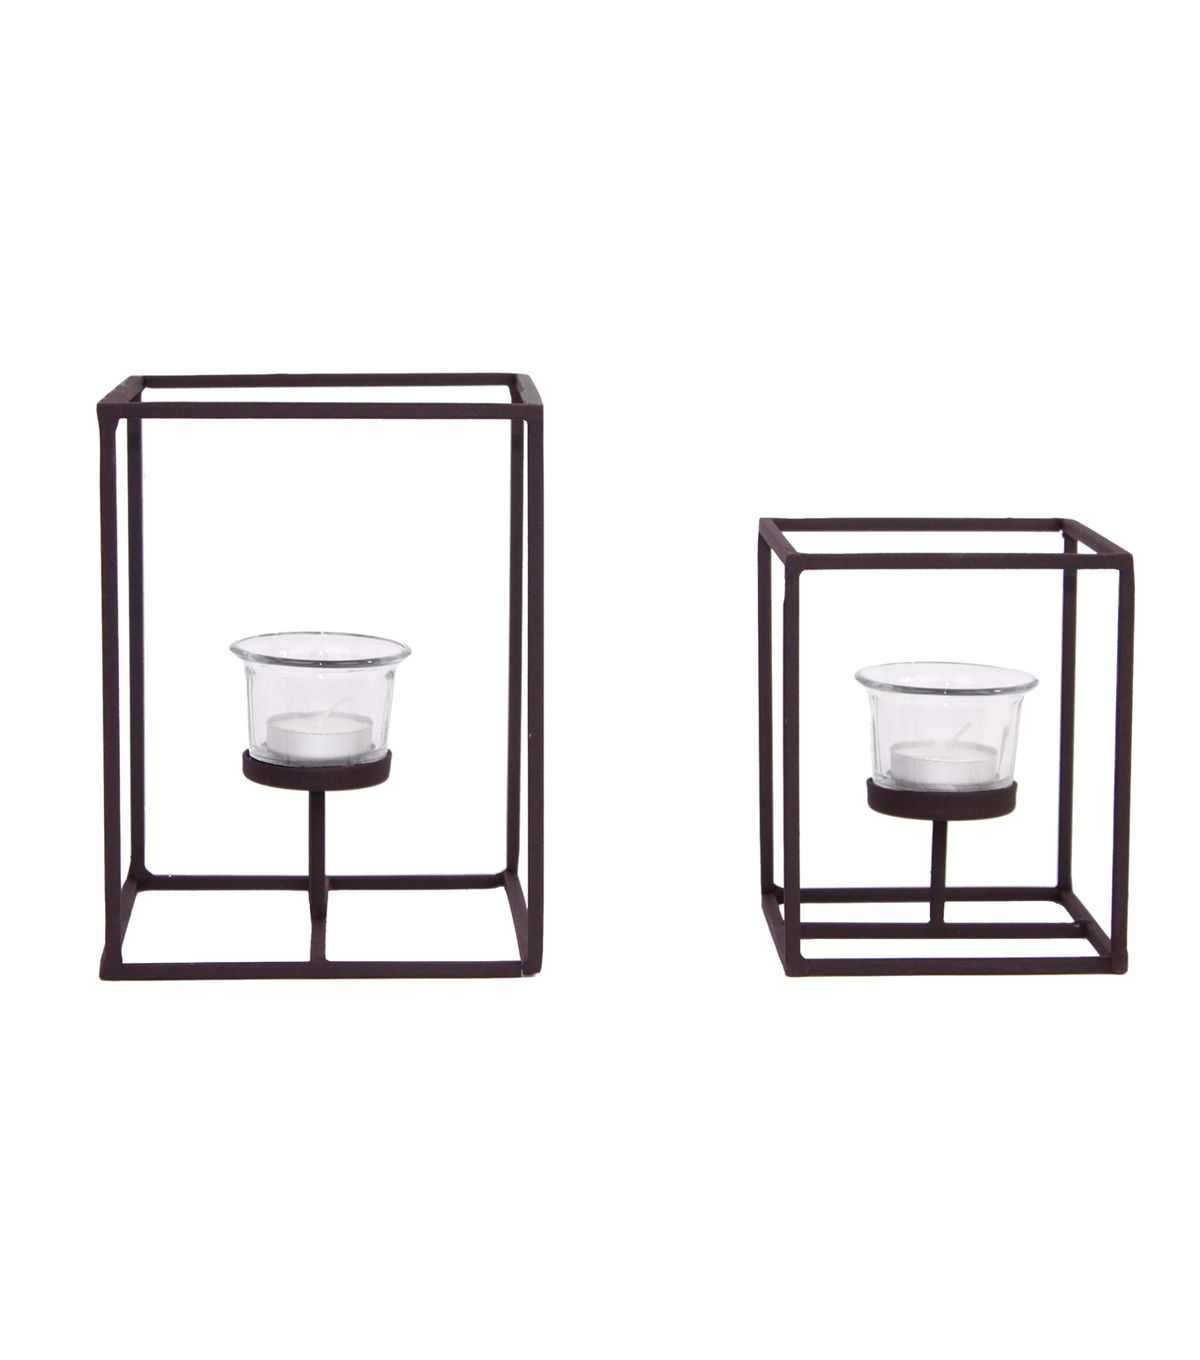 Set of 2 Metal Tealight Holders with Clear Glass